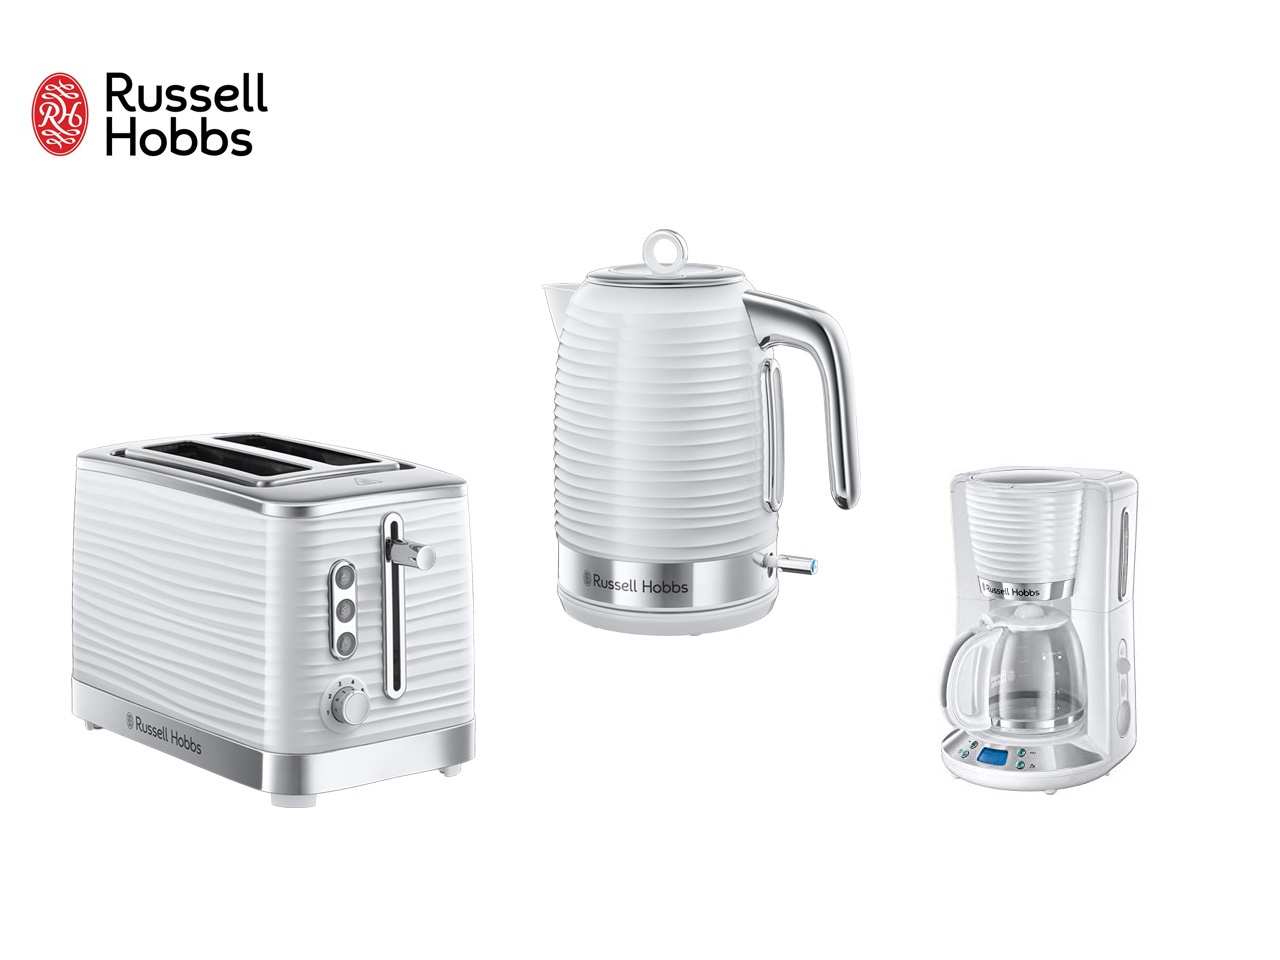 Russell Hobbs lance une nouvelle gamme Inspire